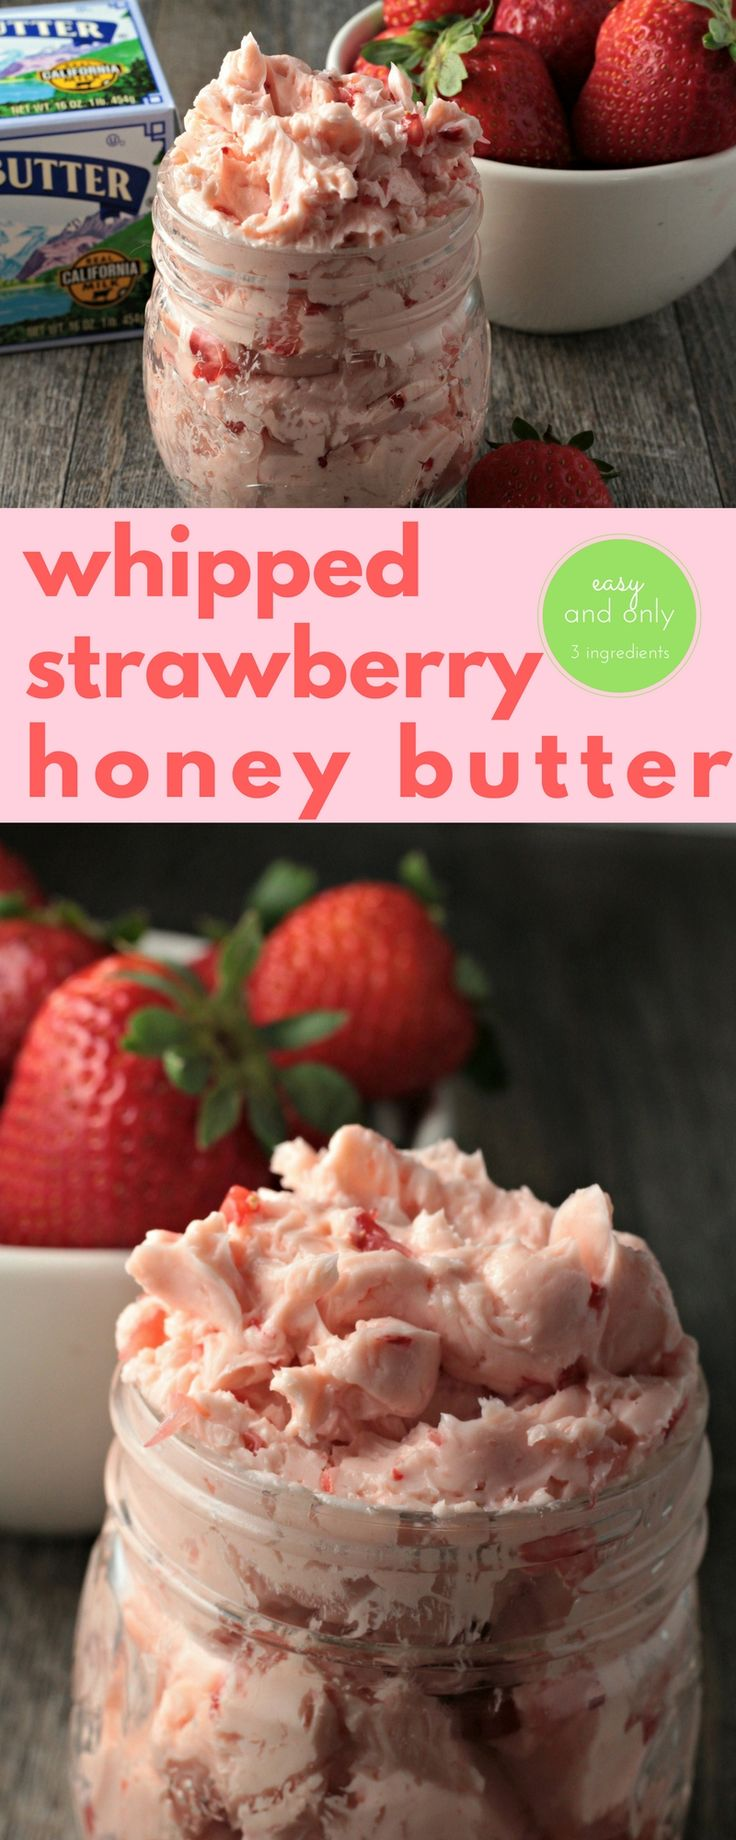 #AD #SealsForGood Whipped Strawberry Honey Butter combines butter, honey and fresh strawberries to make this classic fruit flavored butter. Easy delicious farm fresh food. @RealCaliforniaMilk